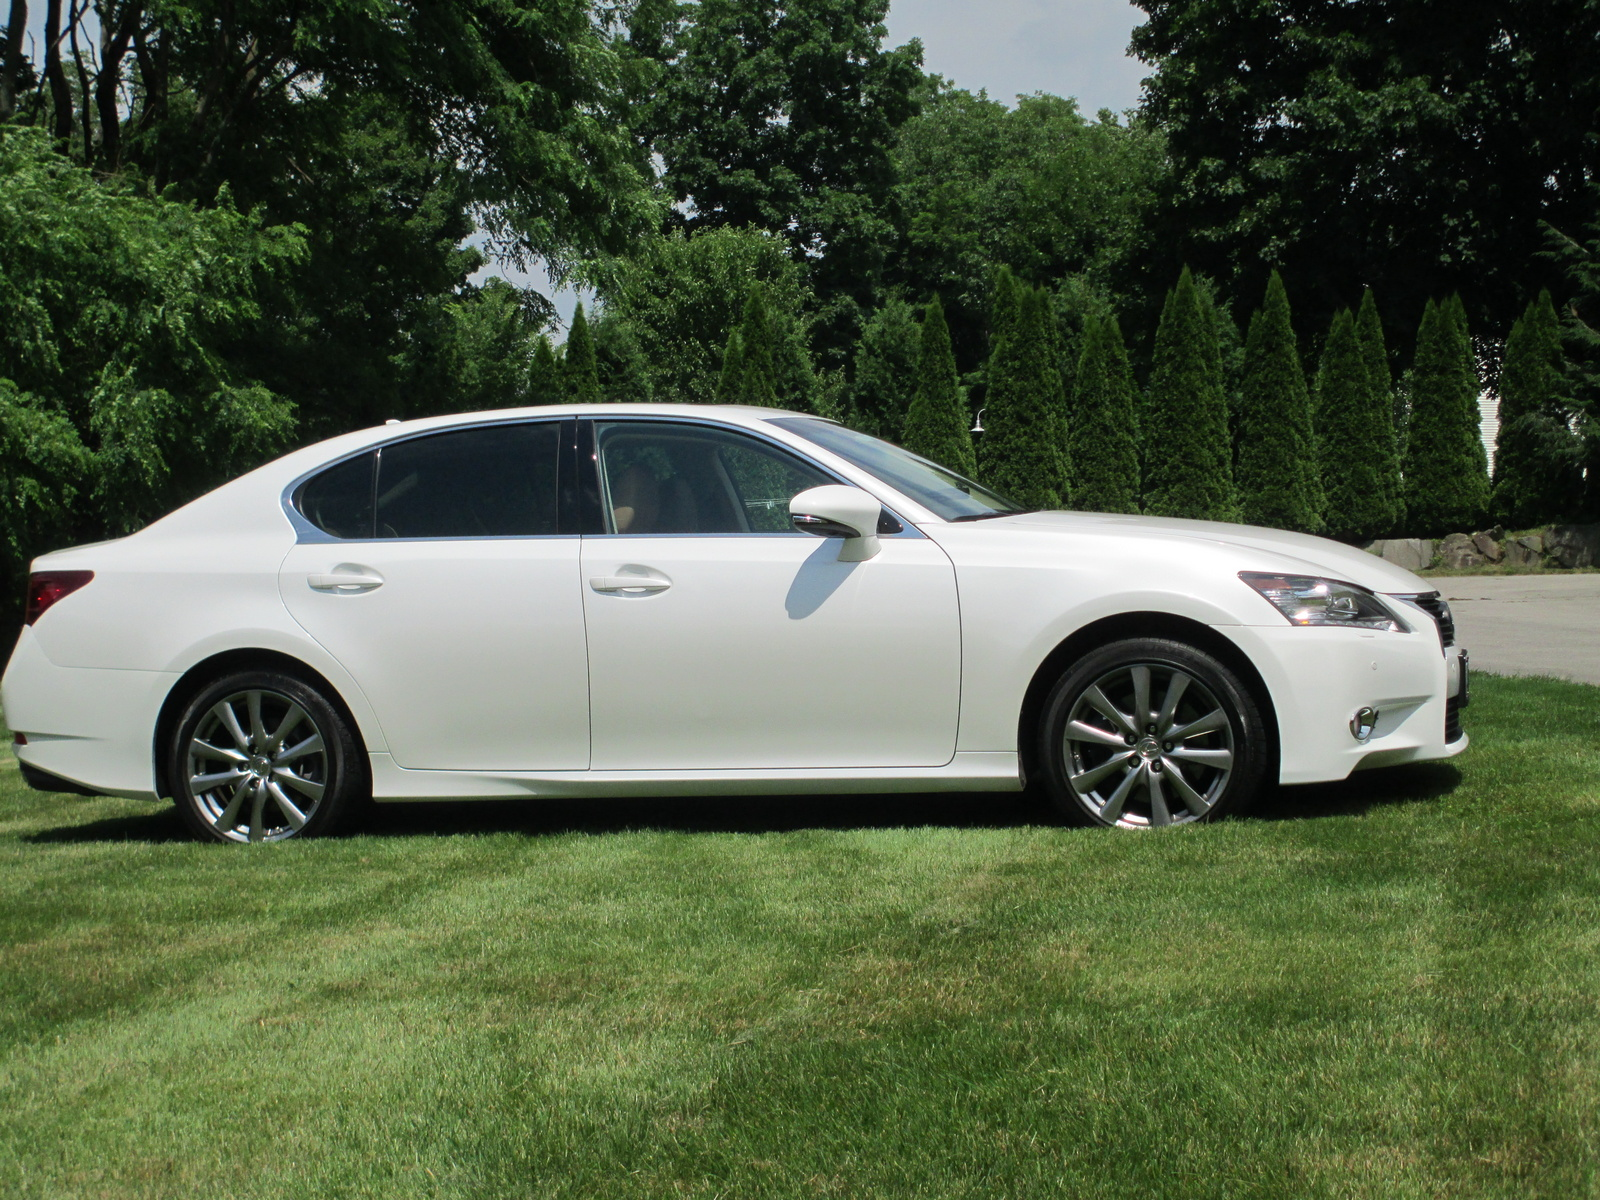 2013 lexus gs 350 reviews specs and prices carscom share. Black Bedroom Furniture Sets. Home Design Ideas